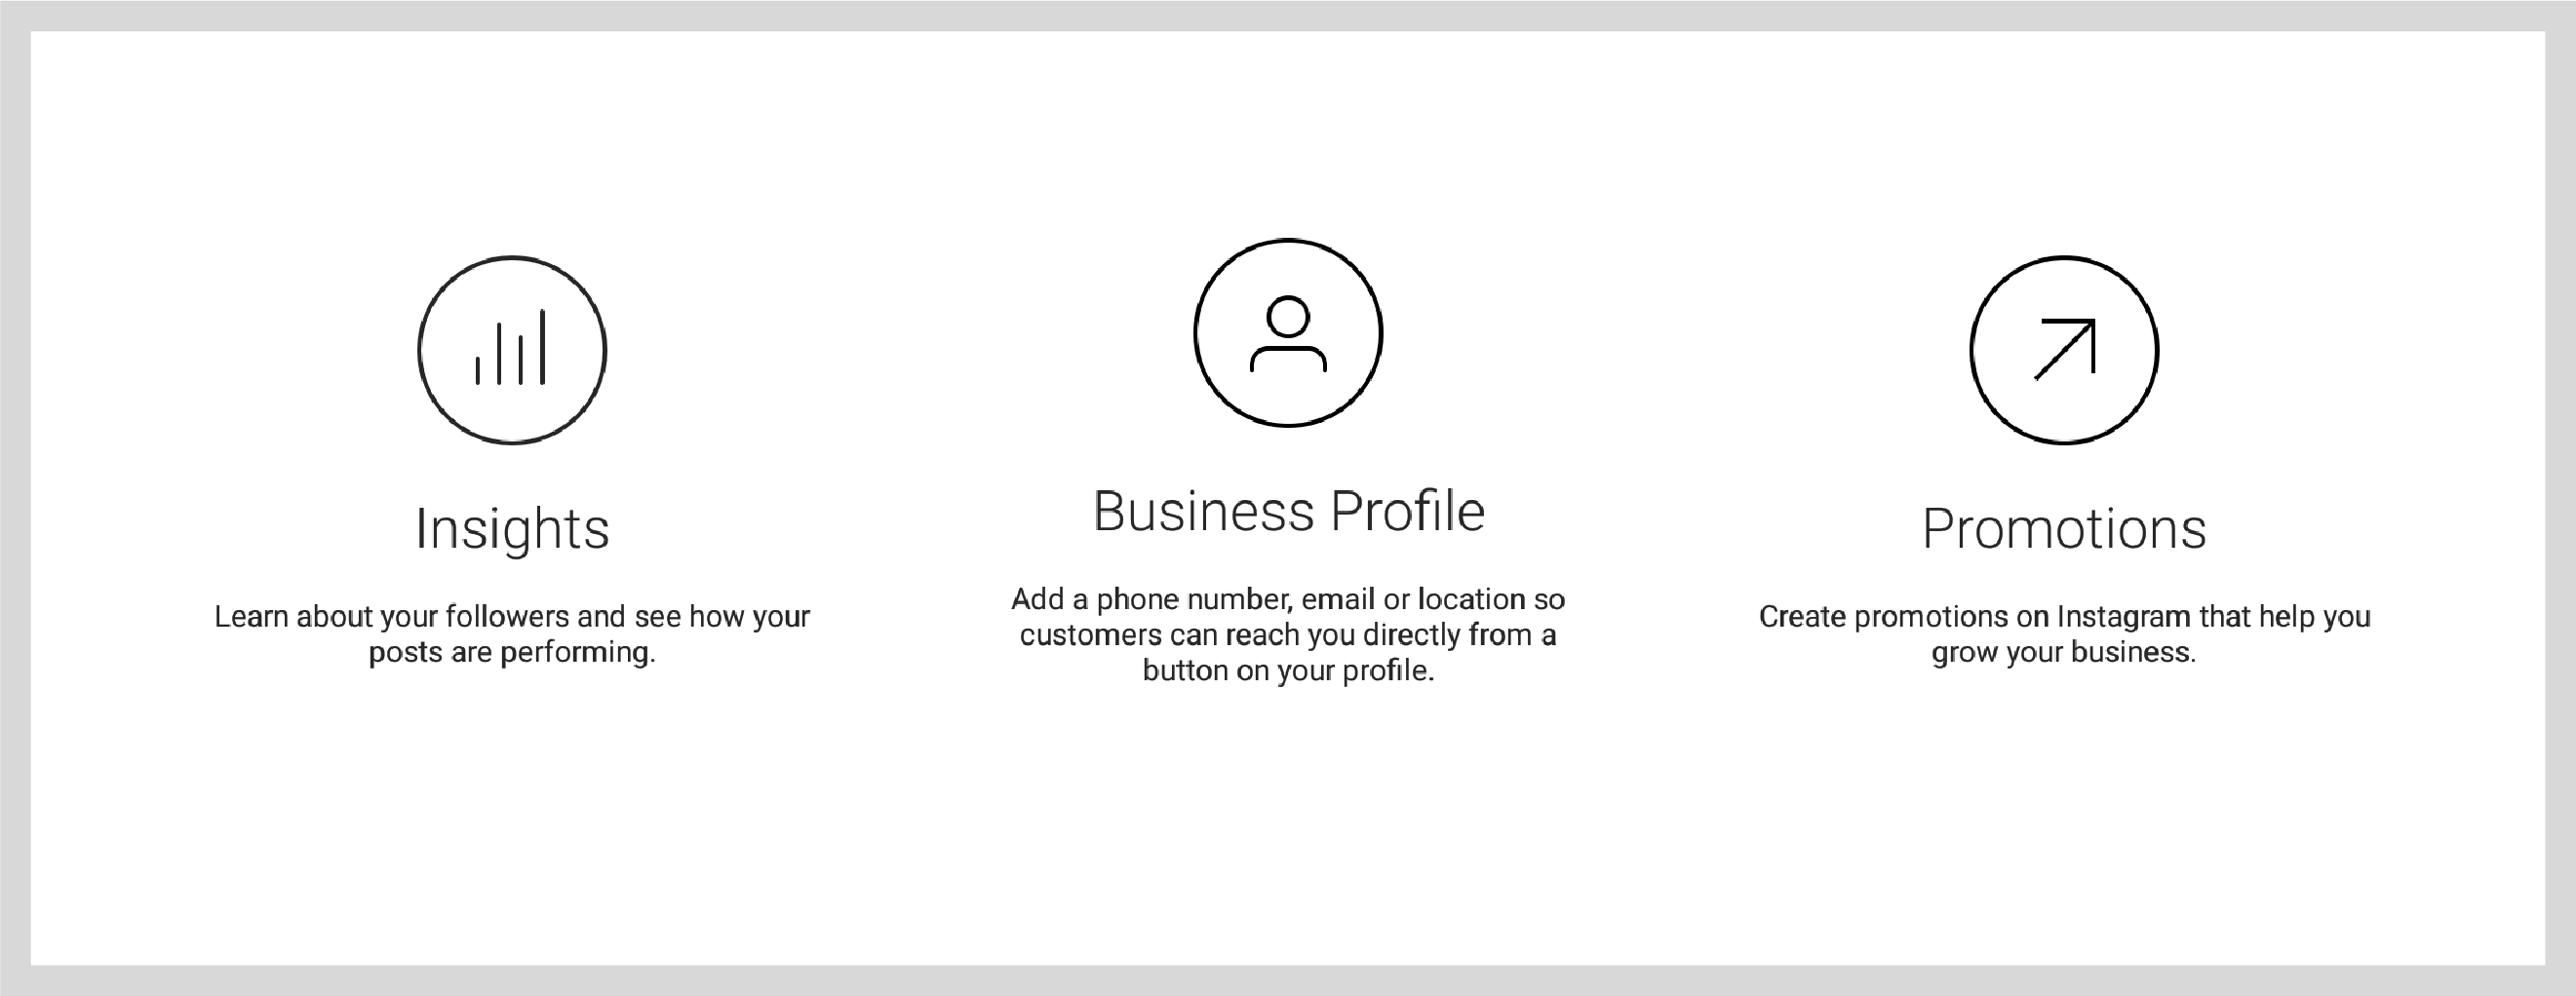 Instagram Business Profile Best Ways to Use Instagram For Business